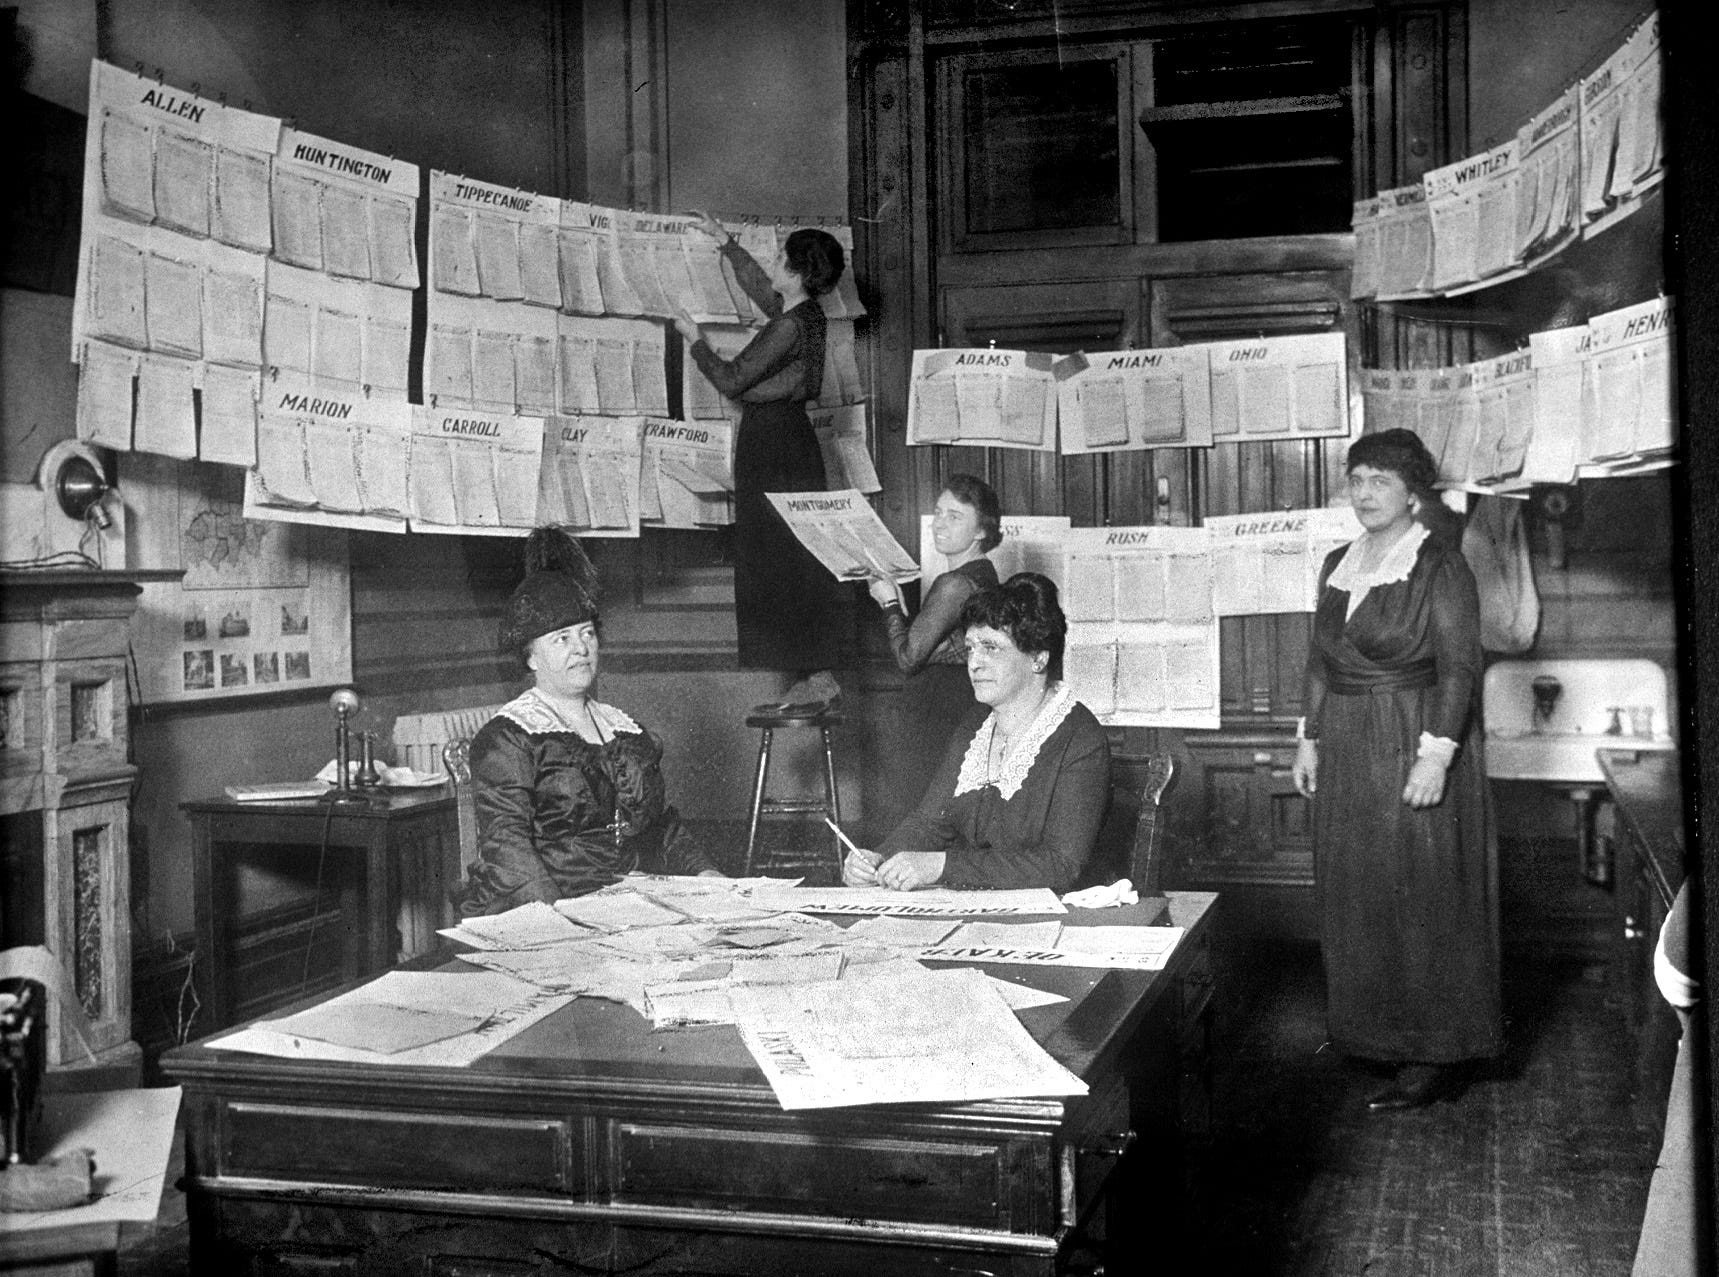 In January 1919, the Women's Franchise League of Indiana displayed petitions from their statewide fall drive for suffrage. The display of petitions lined the walls of the League's headquarters in the Indiana Statehouse. Thousands of men and women signed petitions encouraging legislators to ''take favorable action on woman suffrage.''